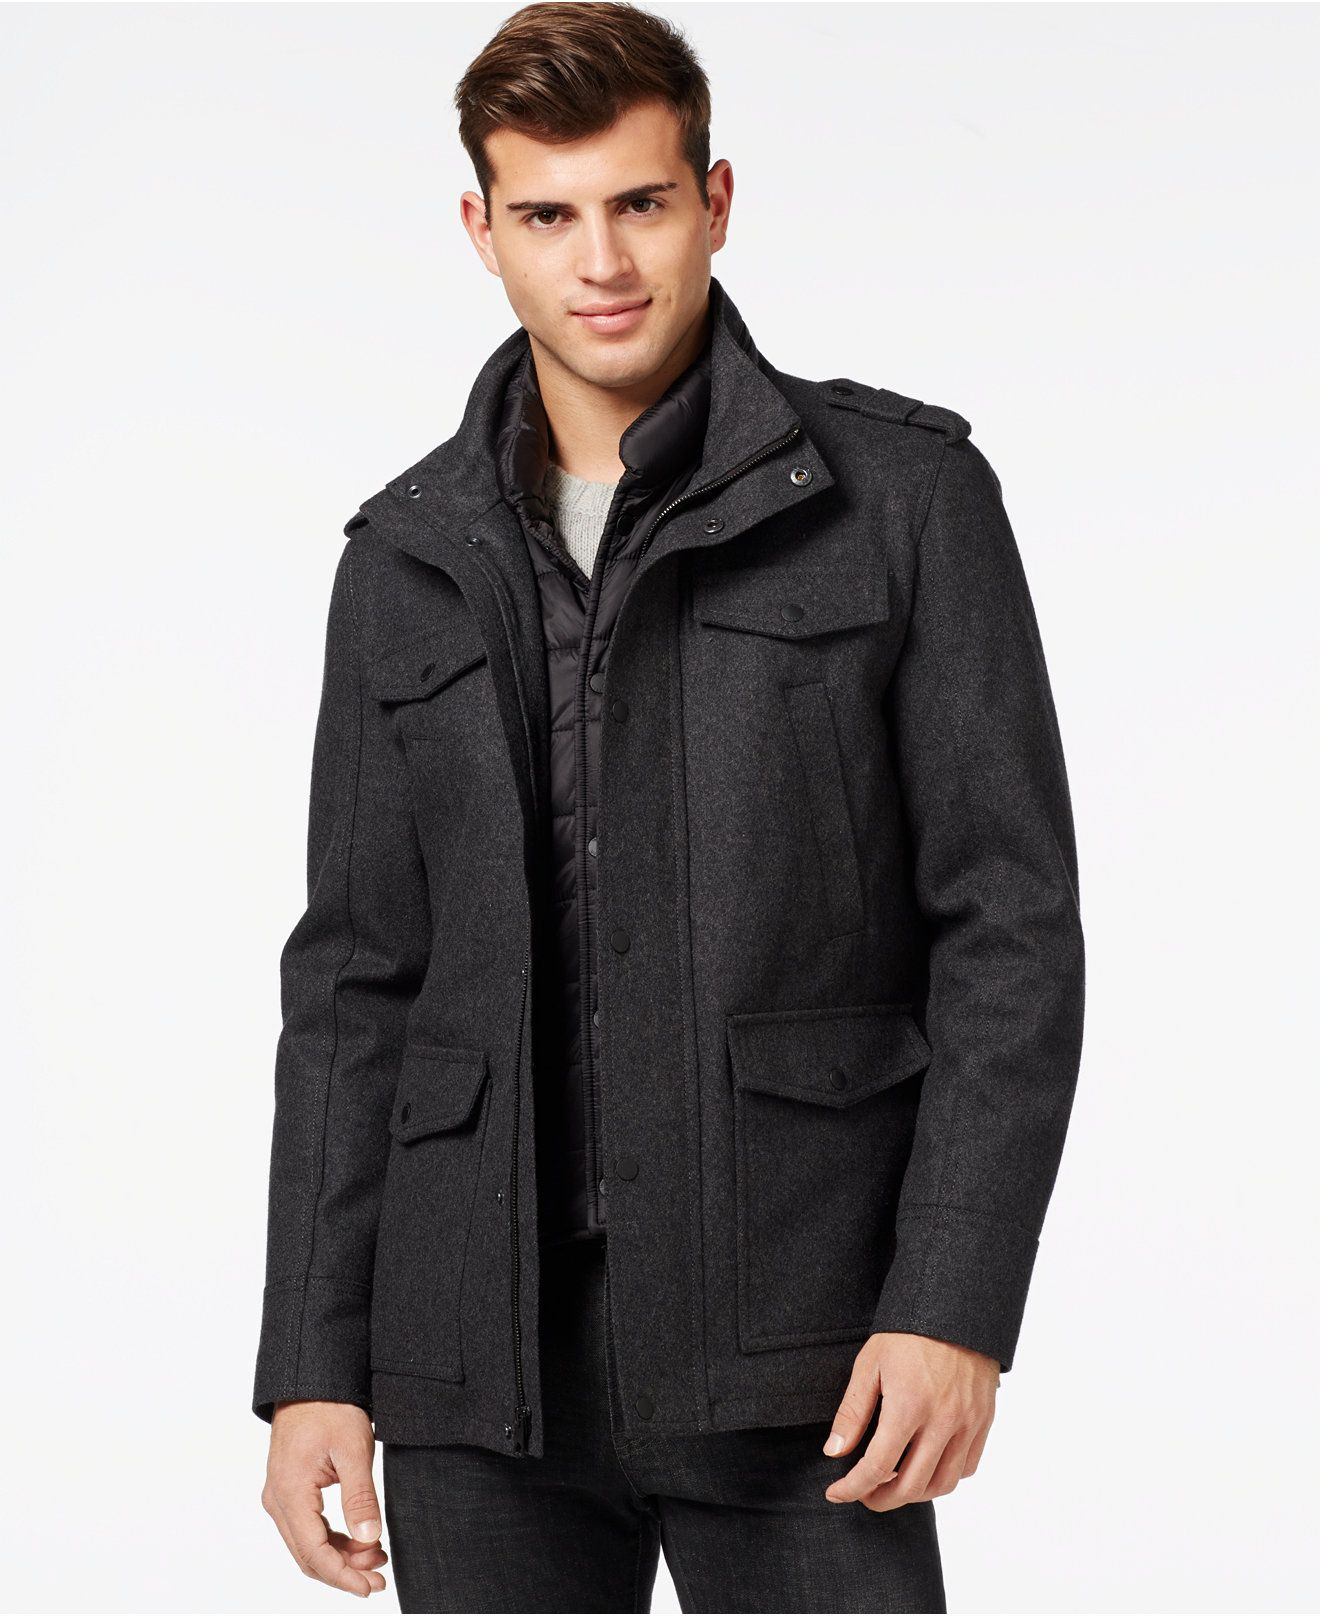 Guess Wool Blend Jacket With Removable Bib Coats Jackets Men Macy S Wool Blend Jacket Mens Wool Coat Men S Coats And Jackets [ 1616 x 1320 Pixel ]